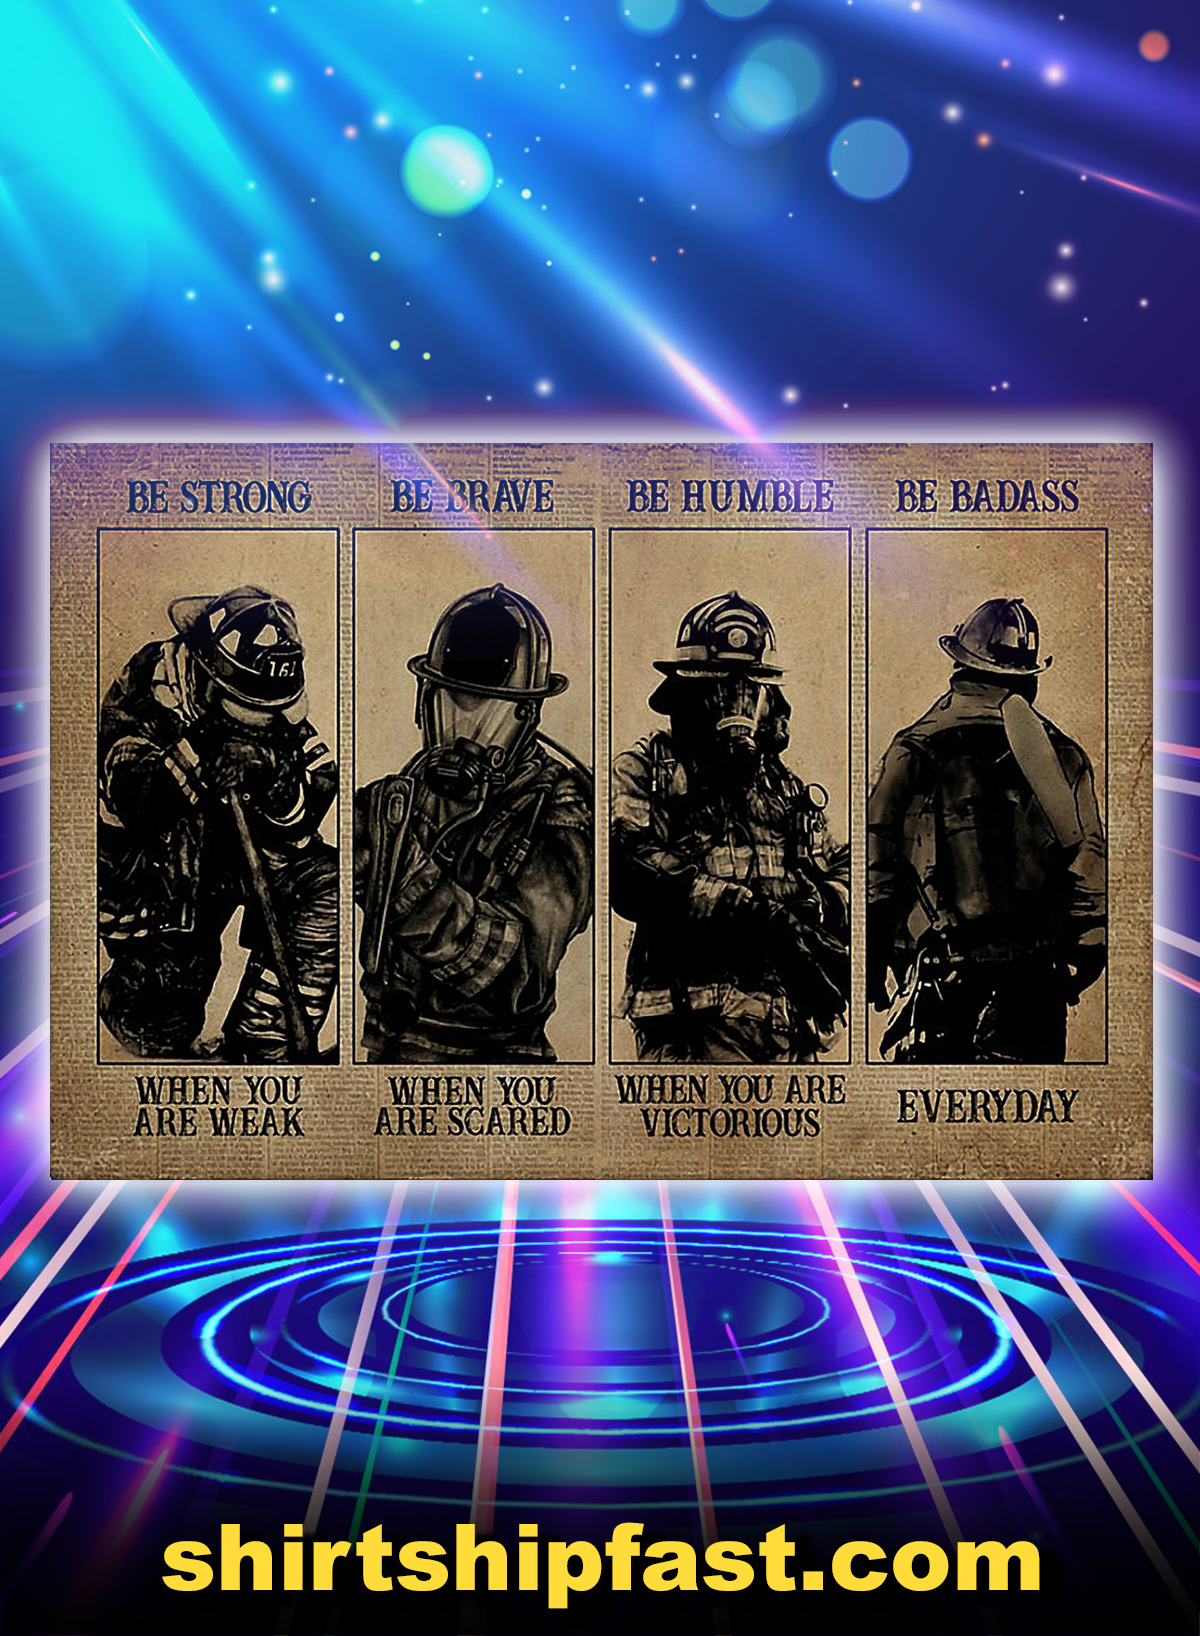 Firefighter be strong be brave be humble be badass poster - A4